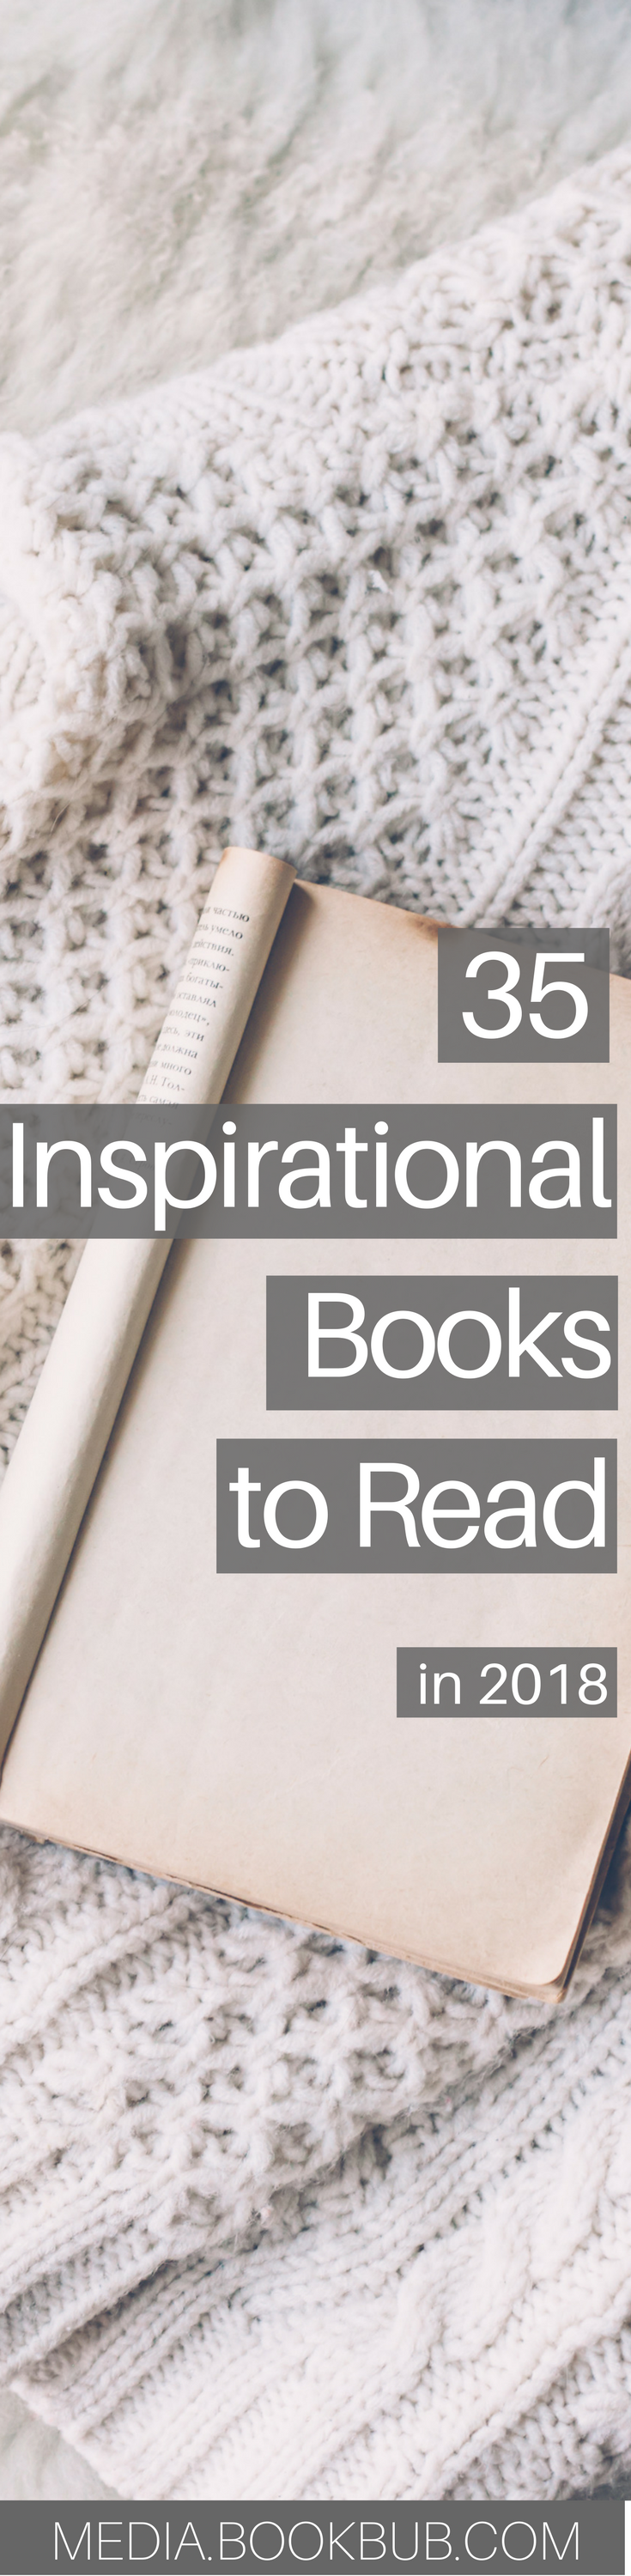 35 Books That Will Make You a Better Person is part of Inspirational books, Books to read before you die, Books to read in your 20s, Books to read, Positive books, Nonfiction books - Don't miss these lifechanging books